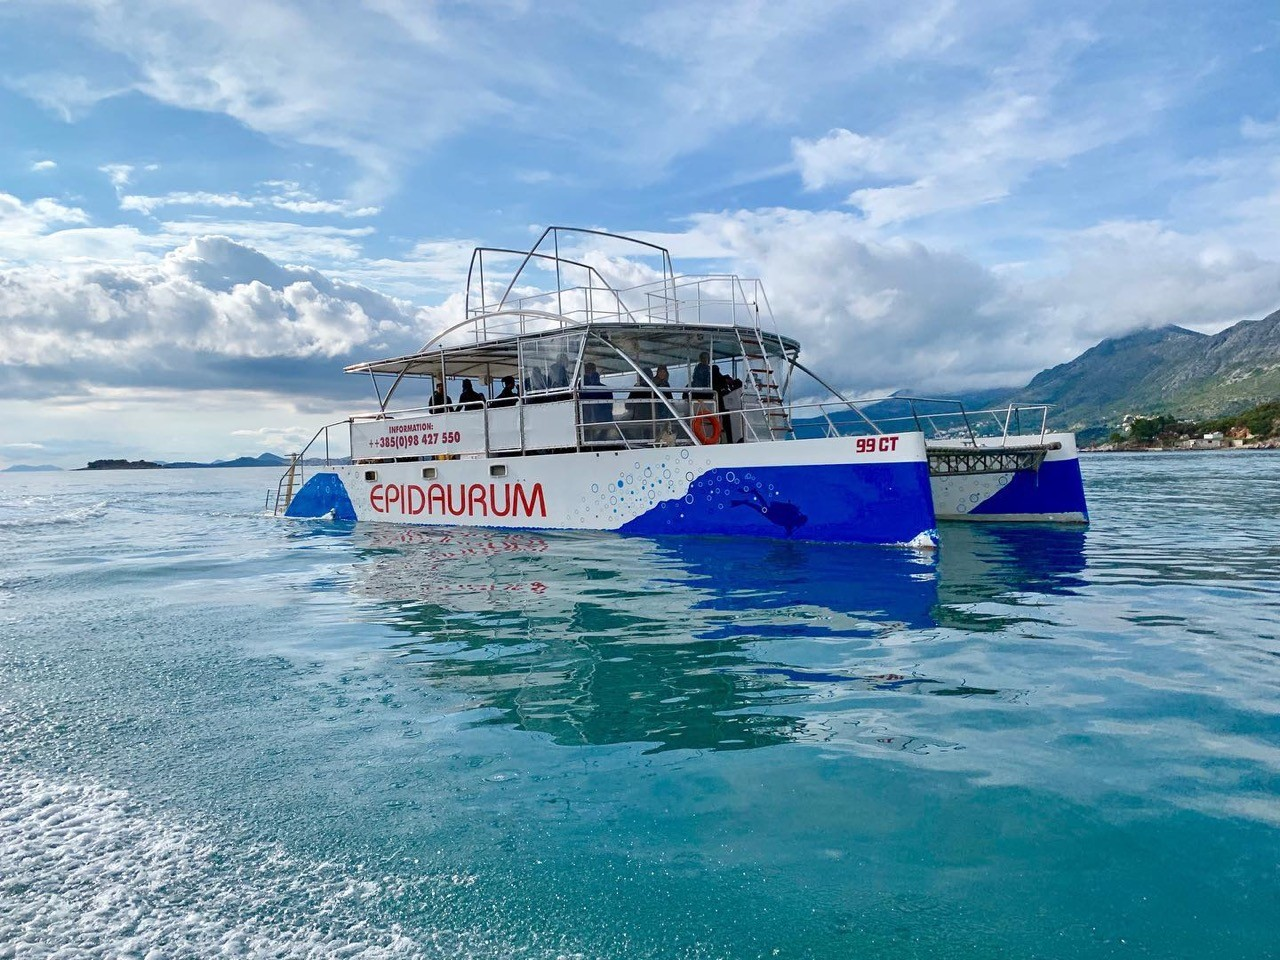 epidaurump catamaran yachting daily tour party